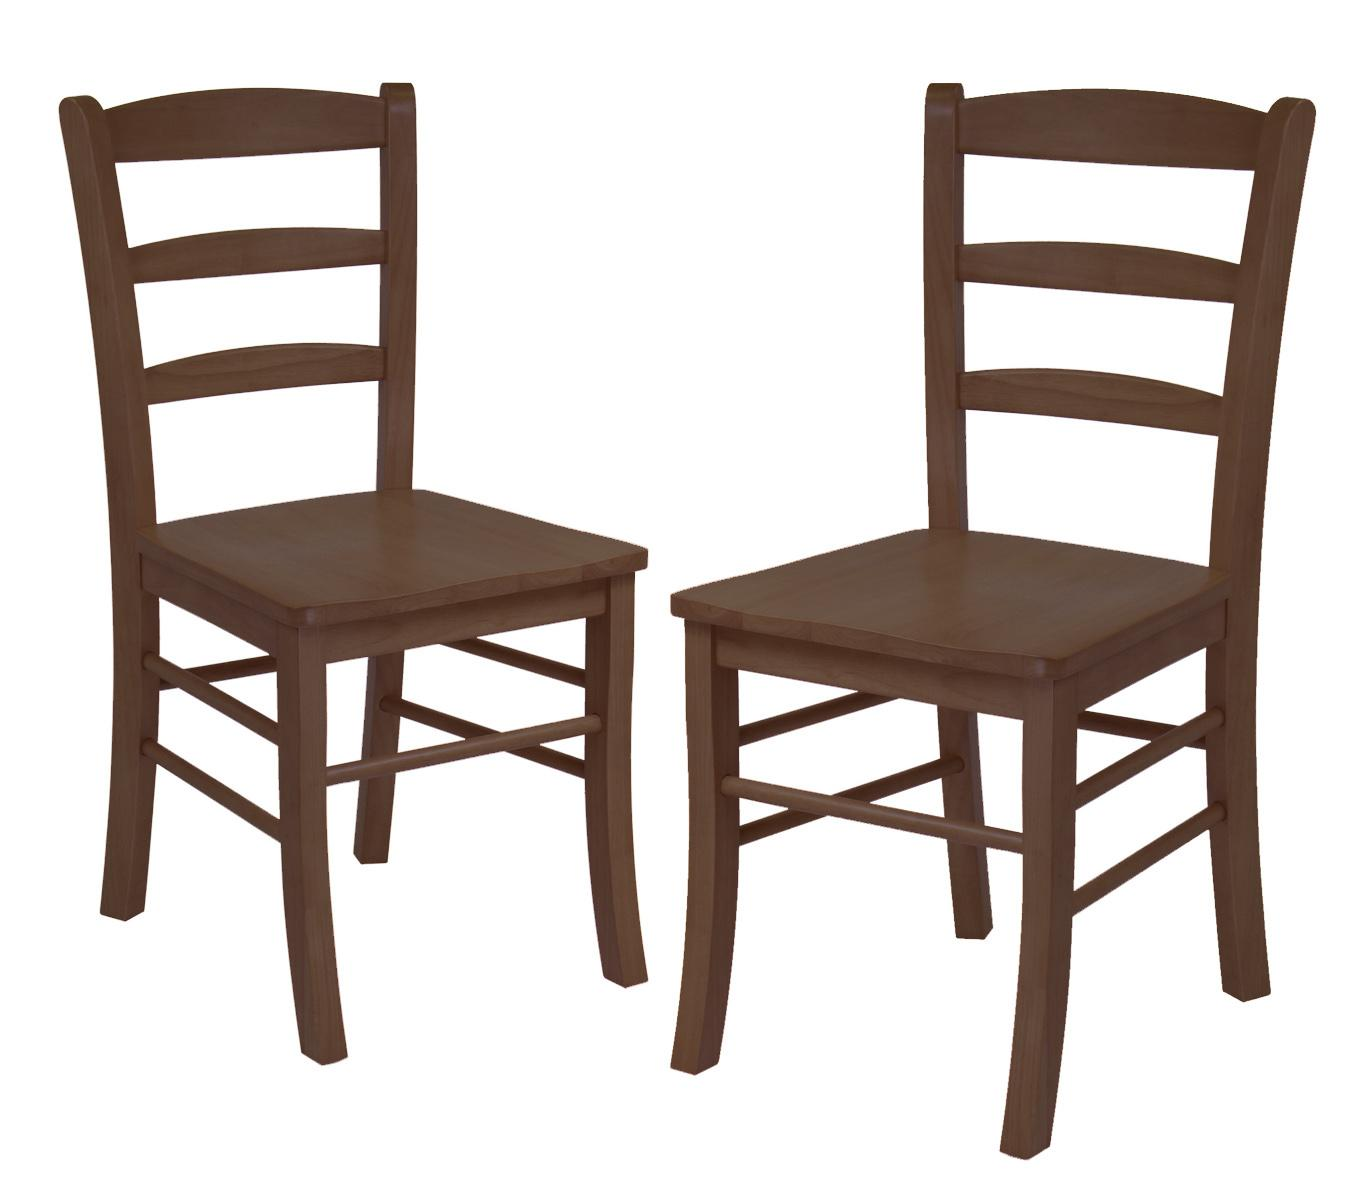 antique ladder back chairs value swing chair name set of 2 rta walnut ojcommerce